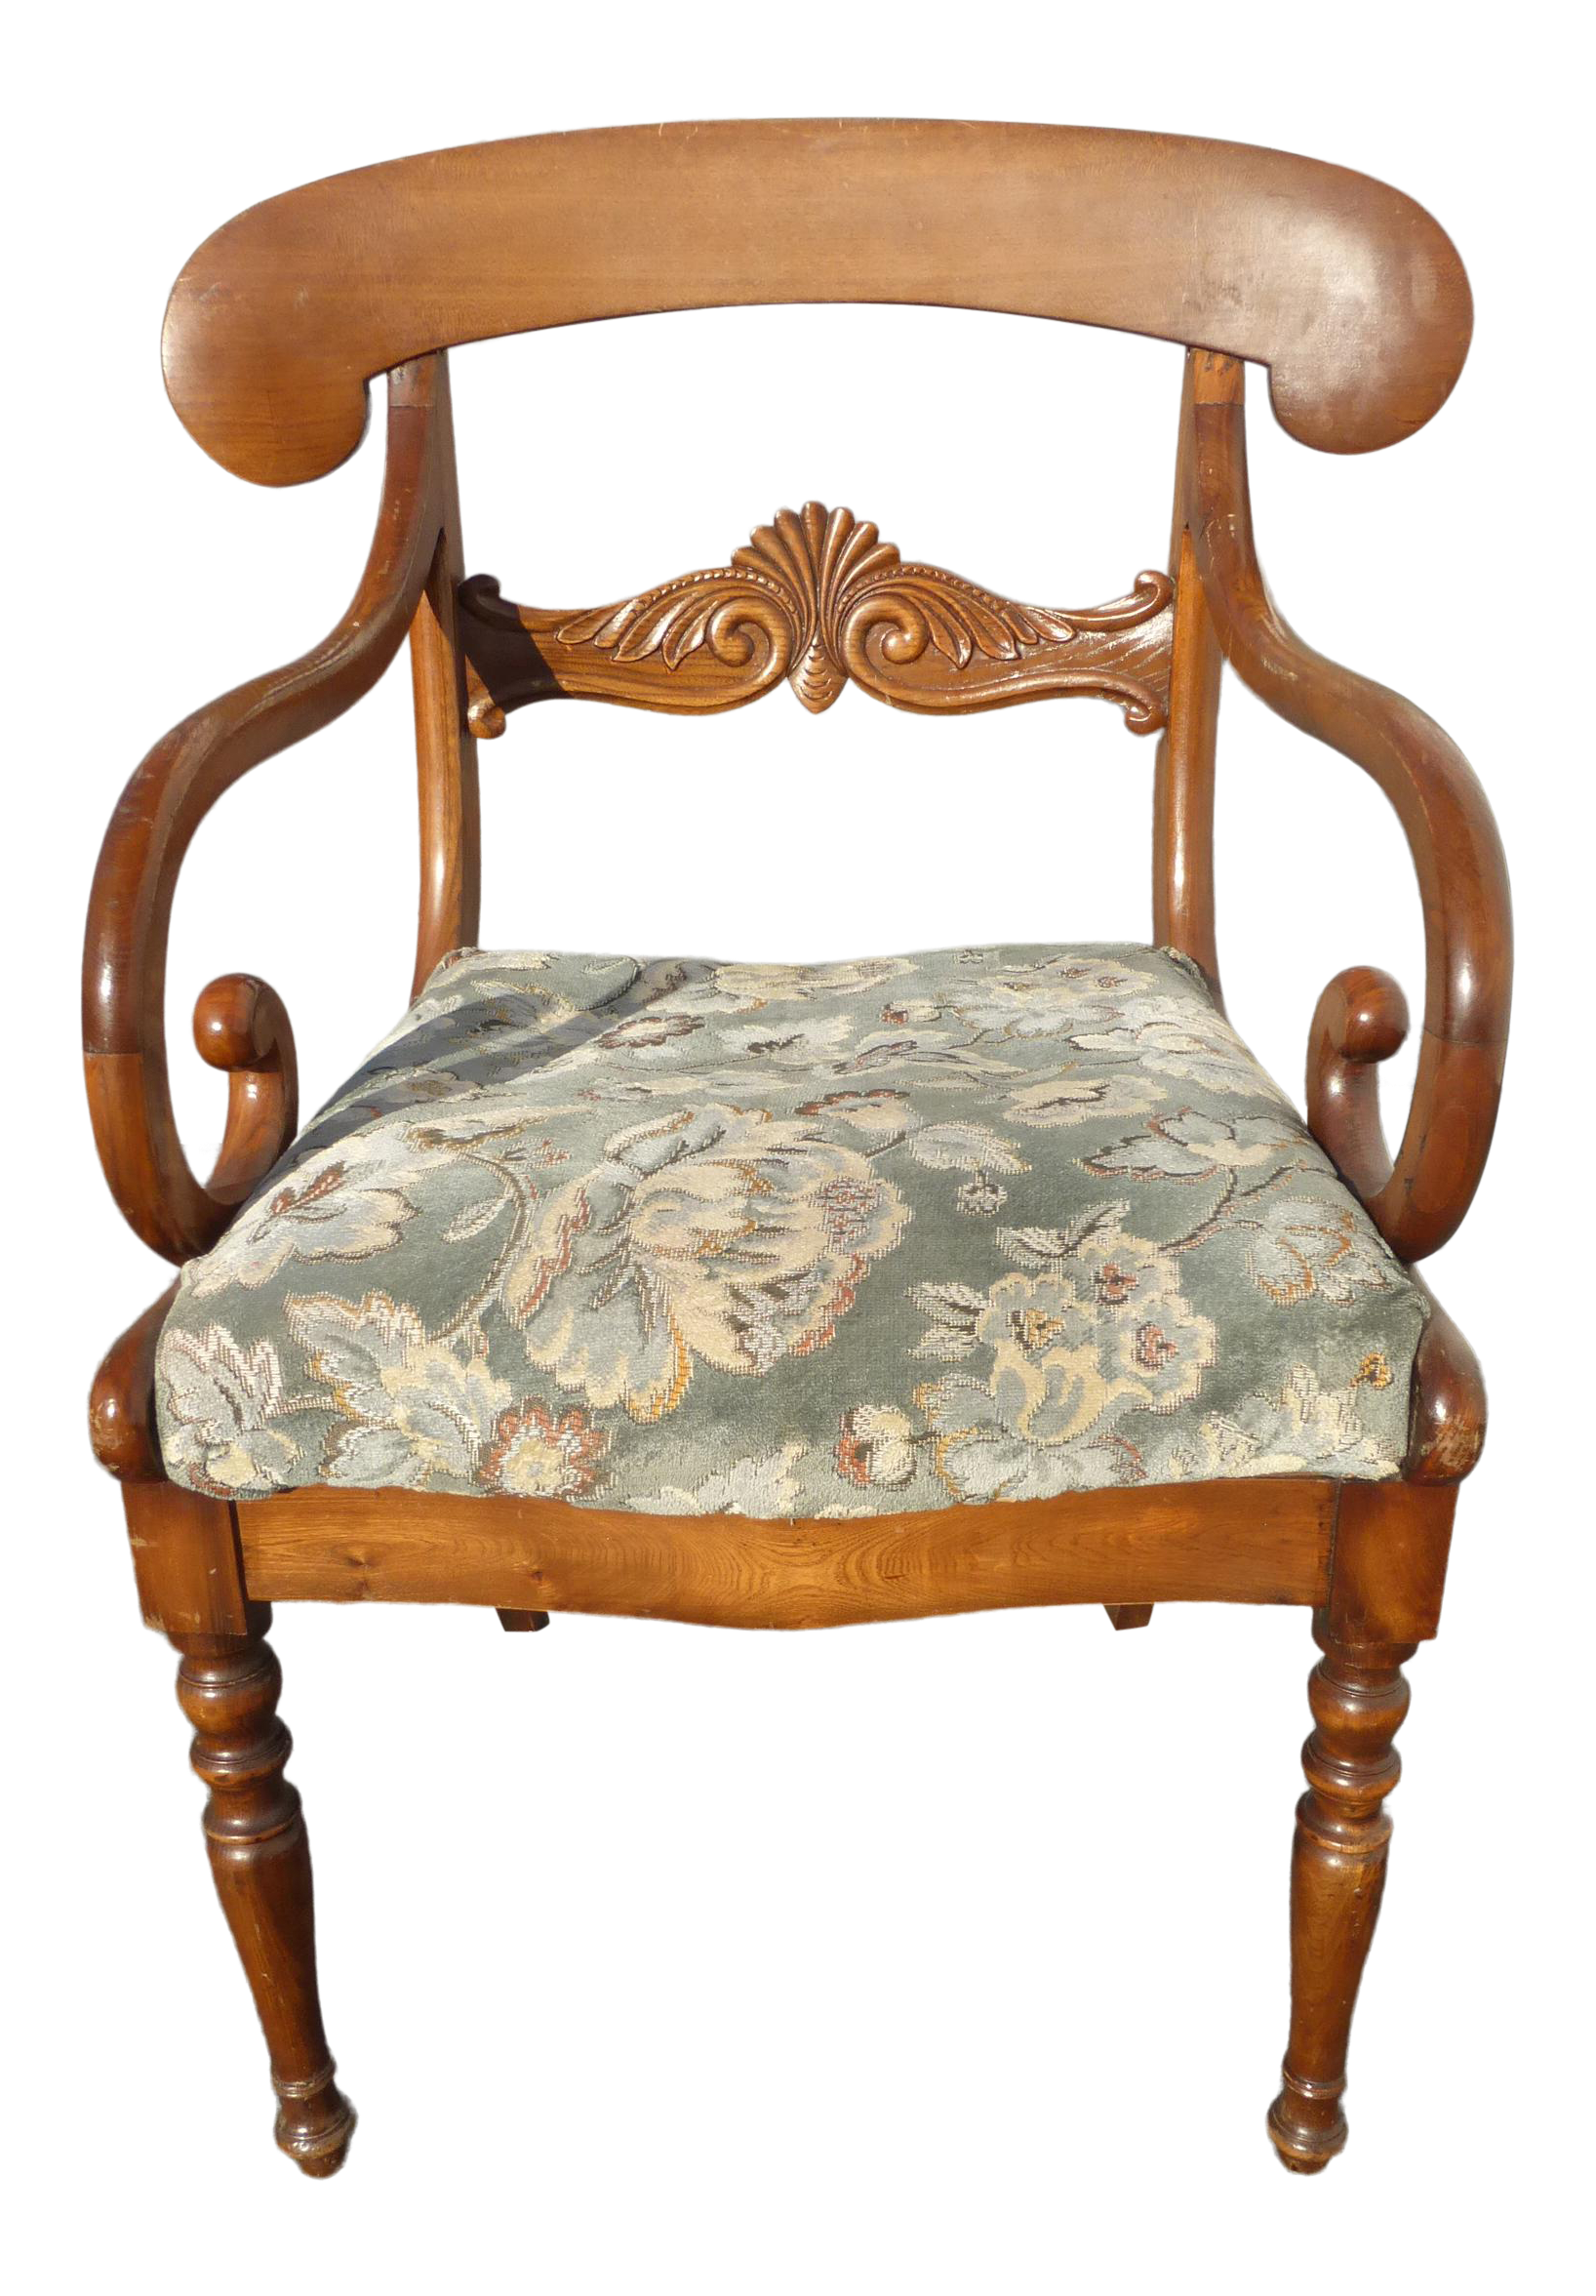 Stupendous Vintage French Country Carved Wood Accent Chair Unique Scrolled Hand Rests Unemploymentrelief Wooden Chair Designs For Living Room Unemploymentrelieforg